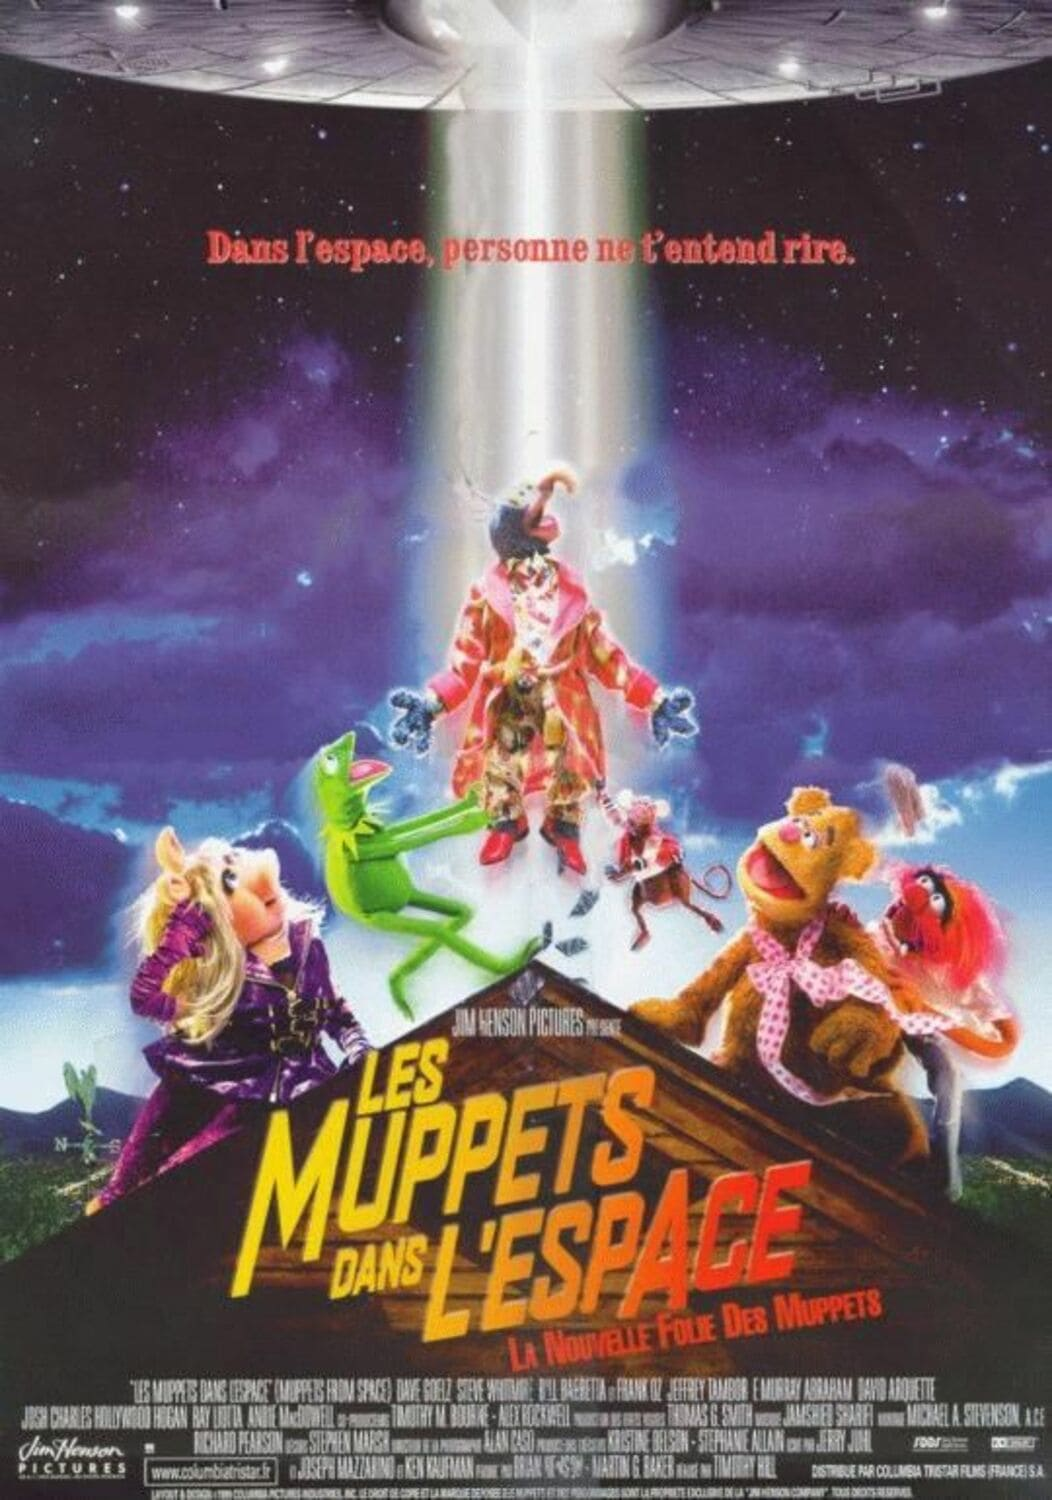 affiche poster muppets espace space disney